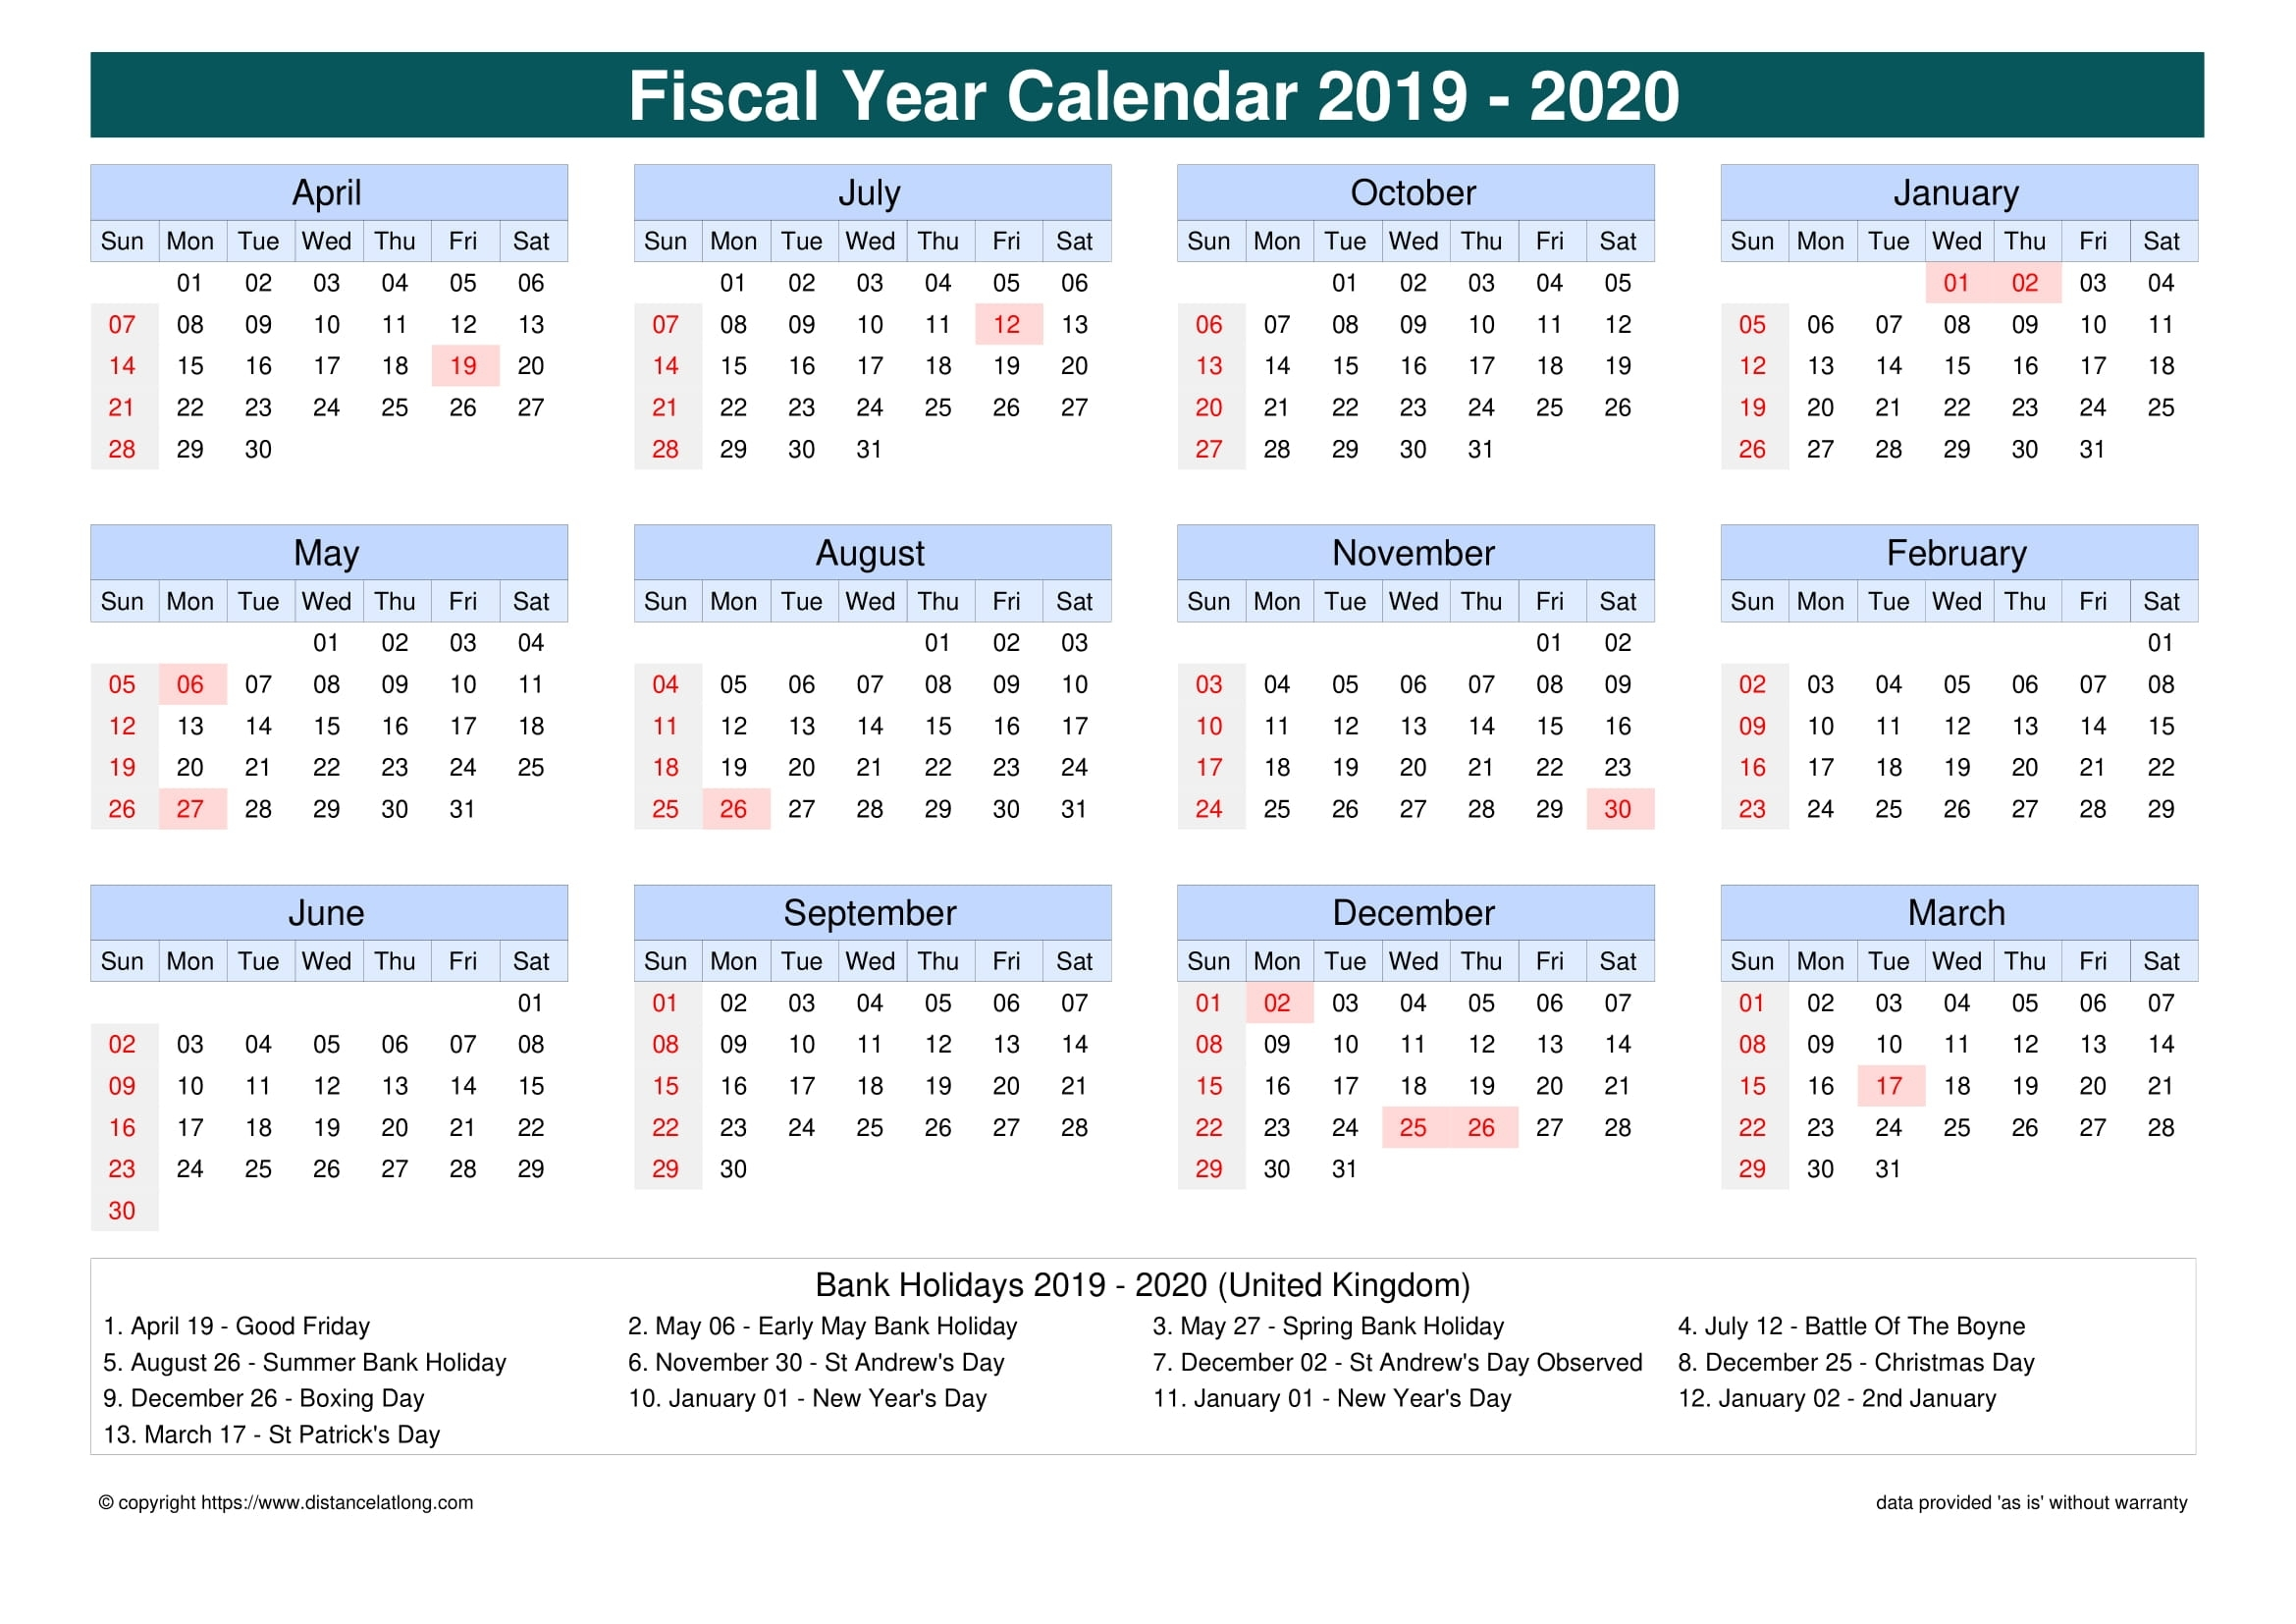 Fiscal Year 2019-2020 Calendar Templates, Free Printable regarding Week Numbers Fiscal Year 2019-2020